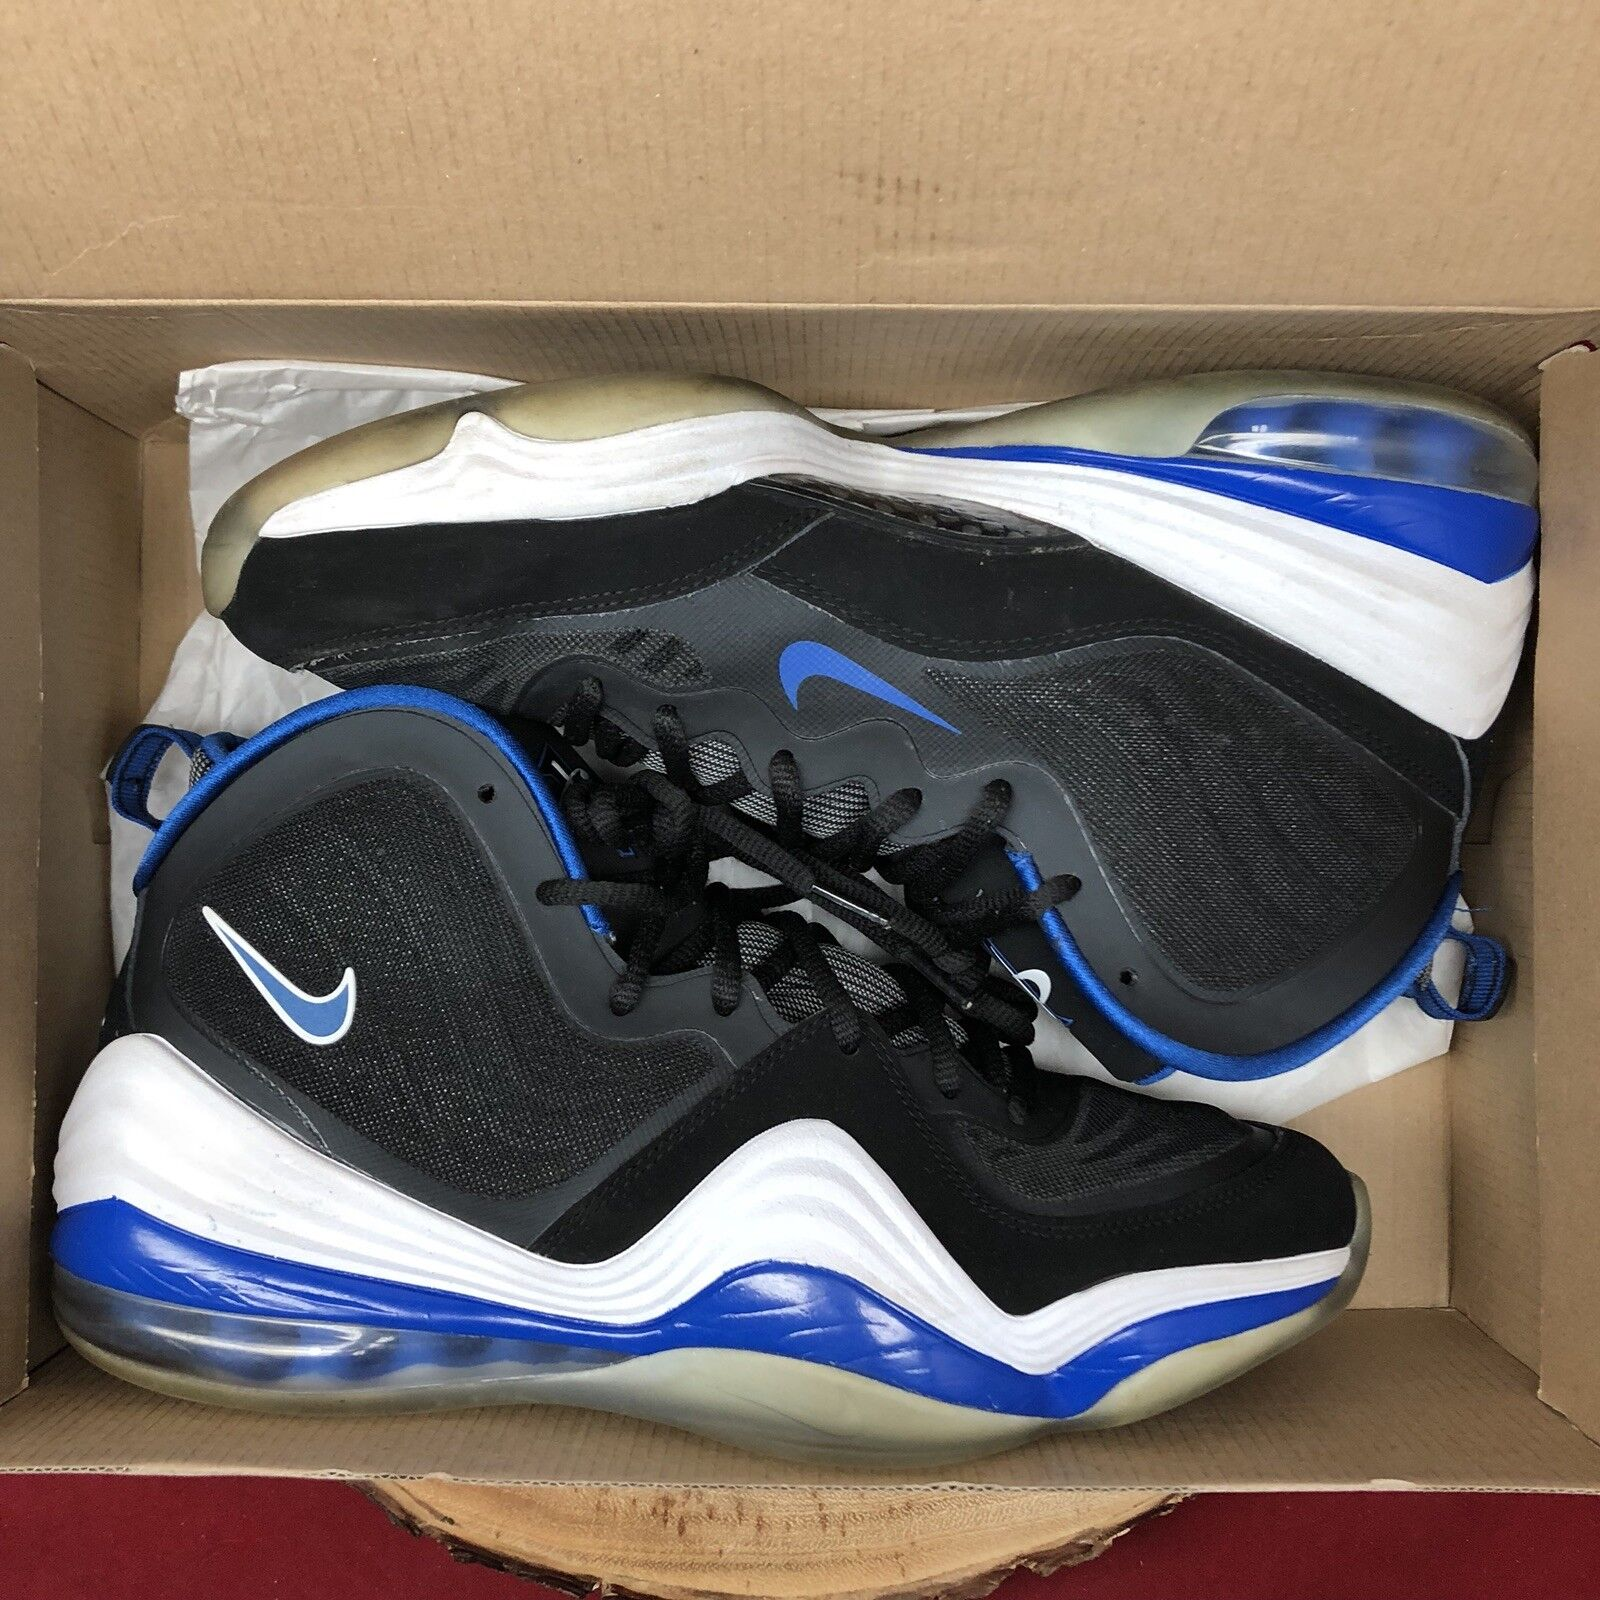 Nike Air Penny Penny Penny V 5 Black Game Royal White Orlando 537331-040 Sz 10.5 Foamposite 4f1cb2